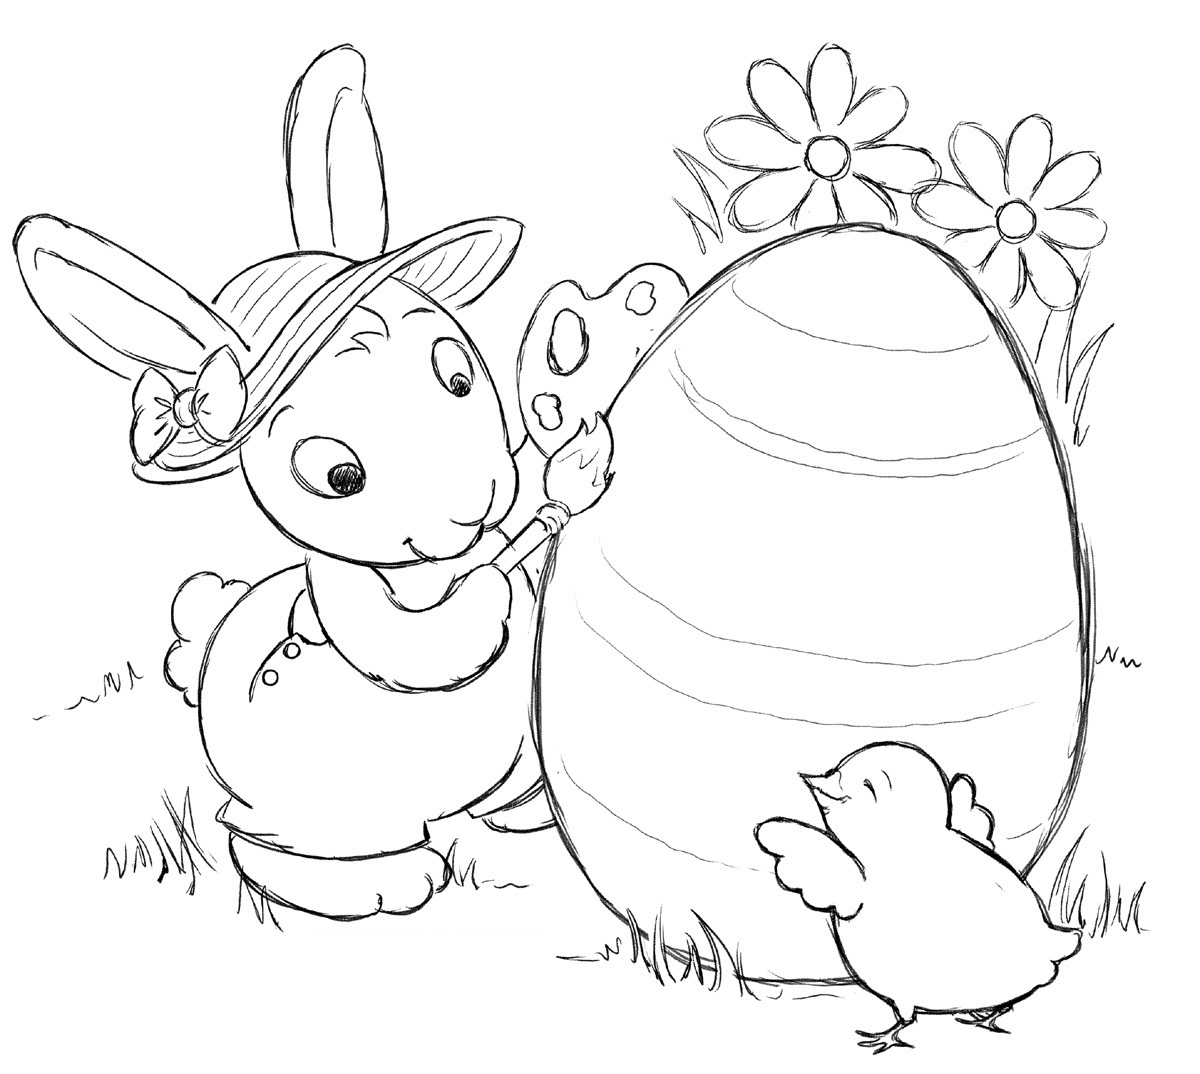 Free Easter Bunny Coloring Pages To Print At Getdrawings Com Free